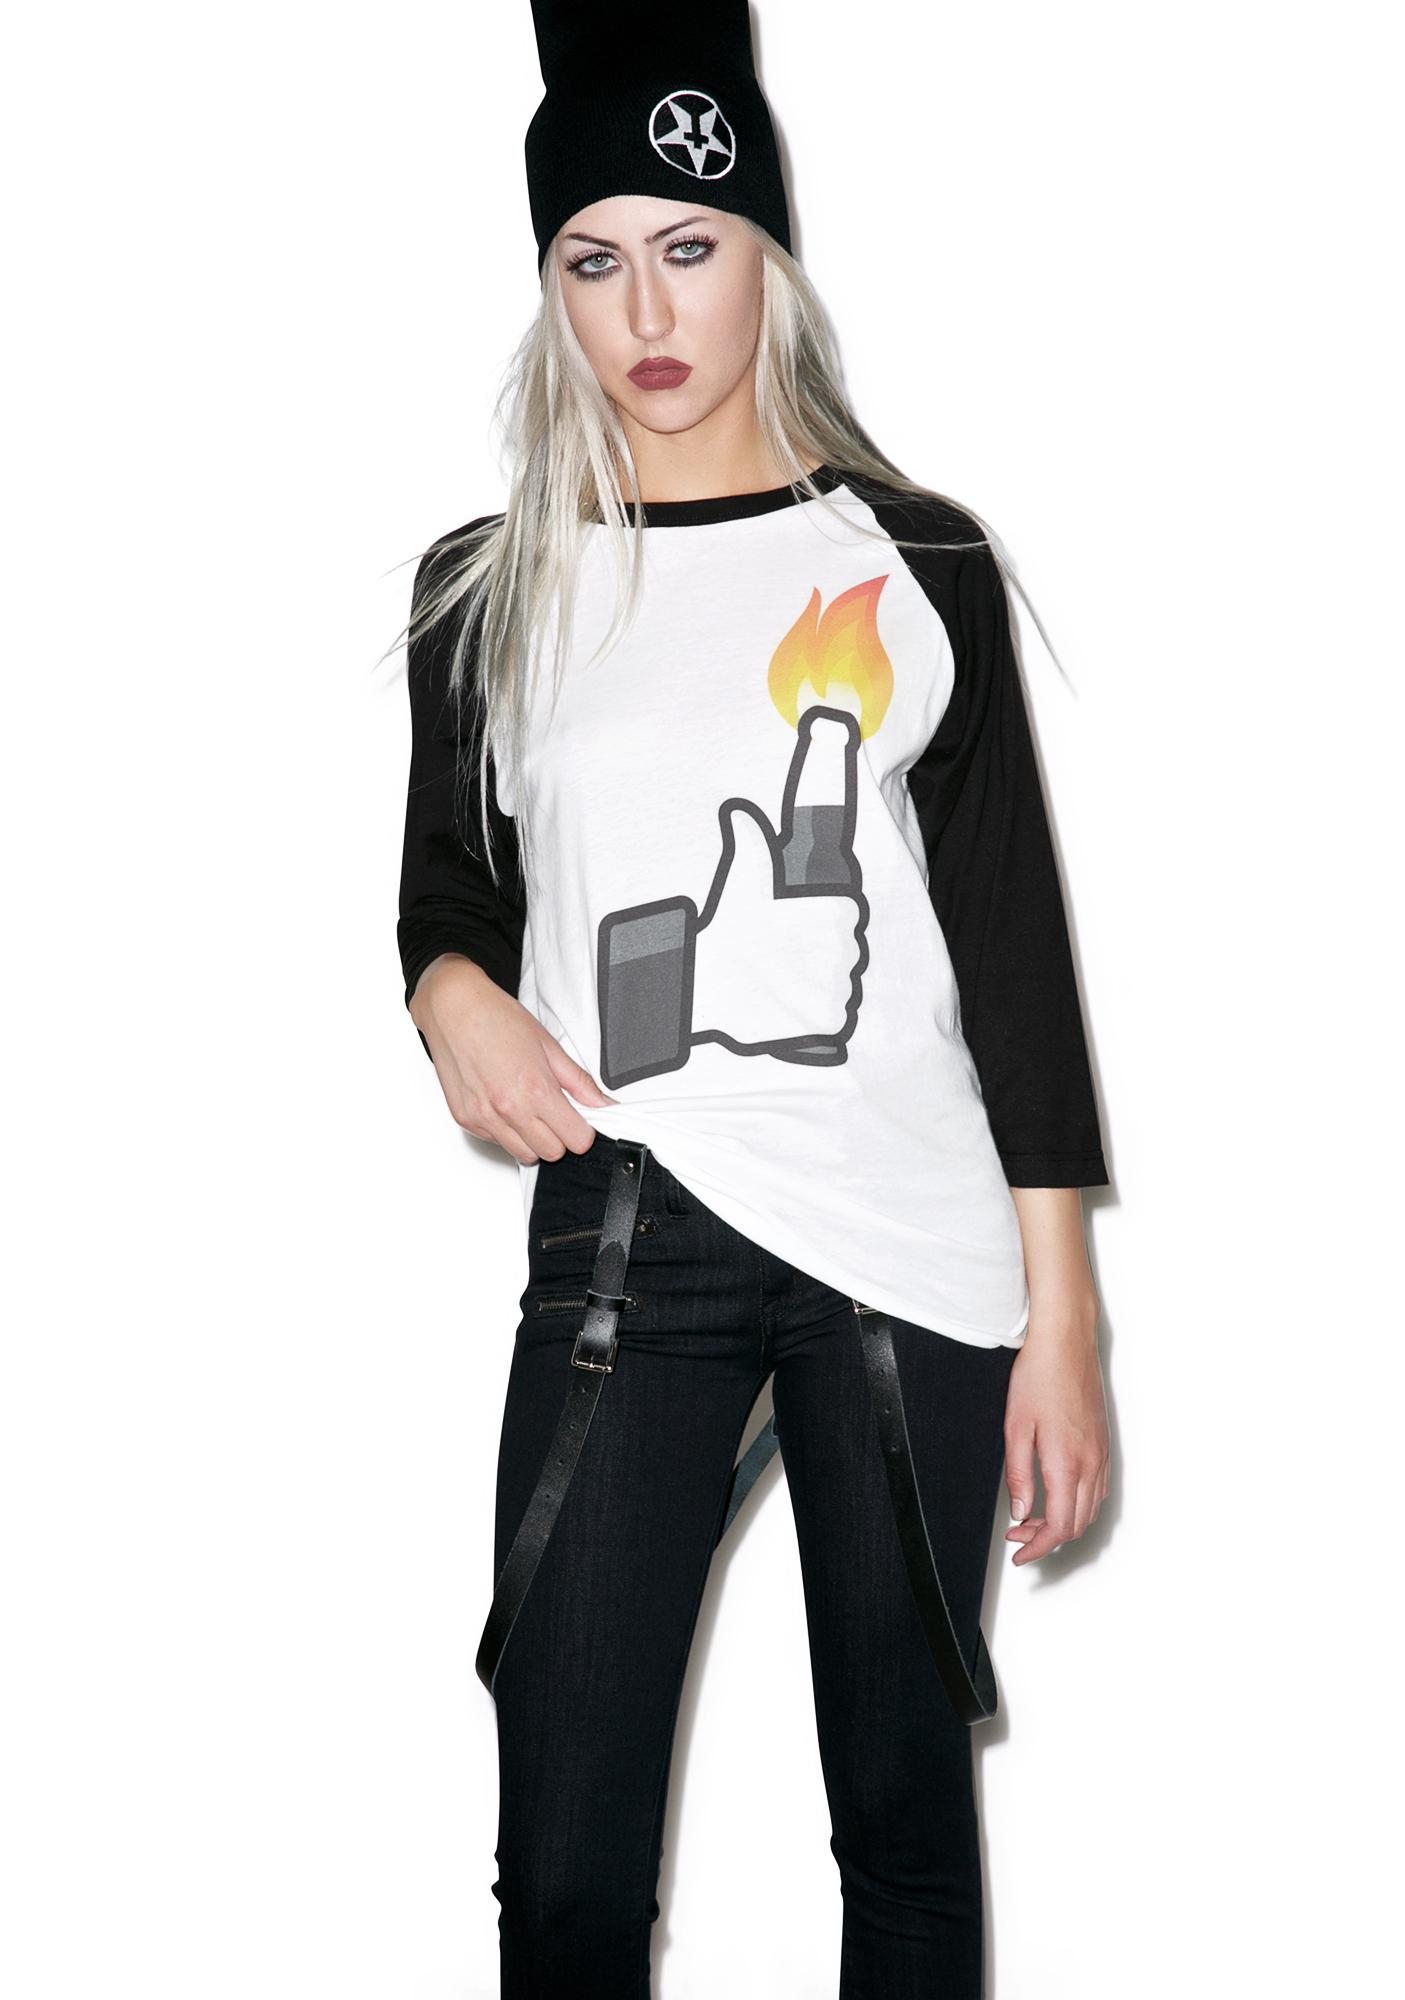 ABCNT Cocktail Chaos Baseball Tee